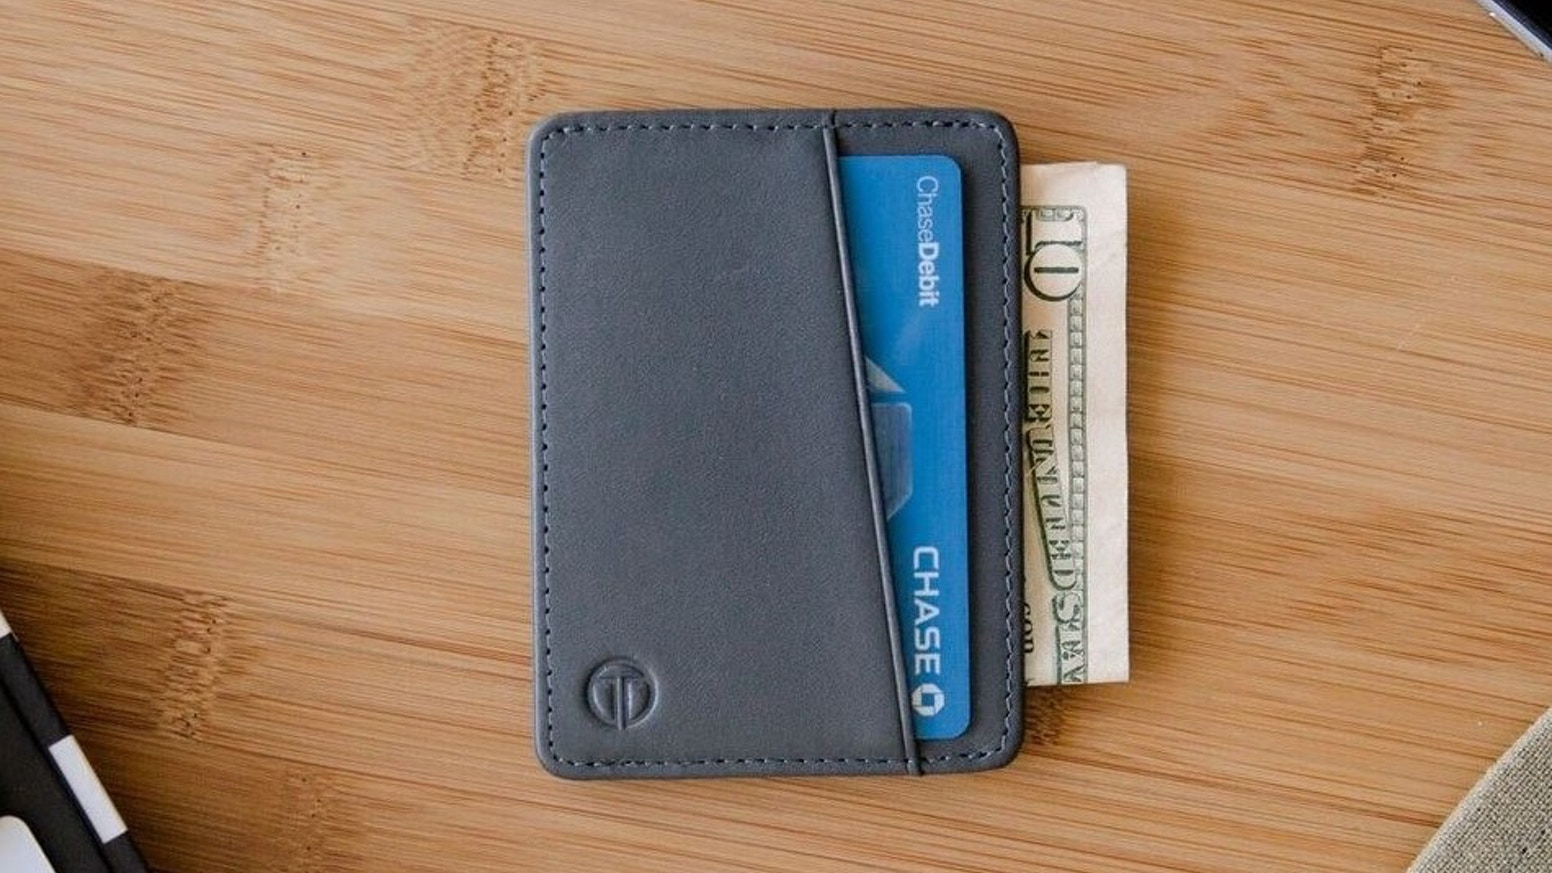 7b65f63ef31 Slim minimalist wallet with push through cash slot for easy access and  functionally designed card slots